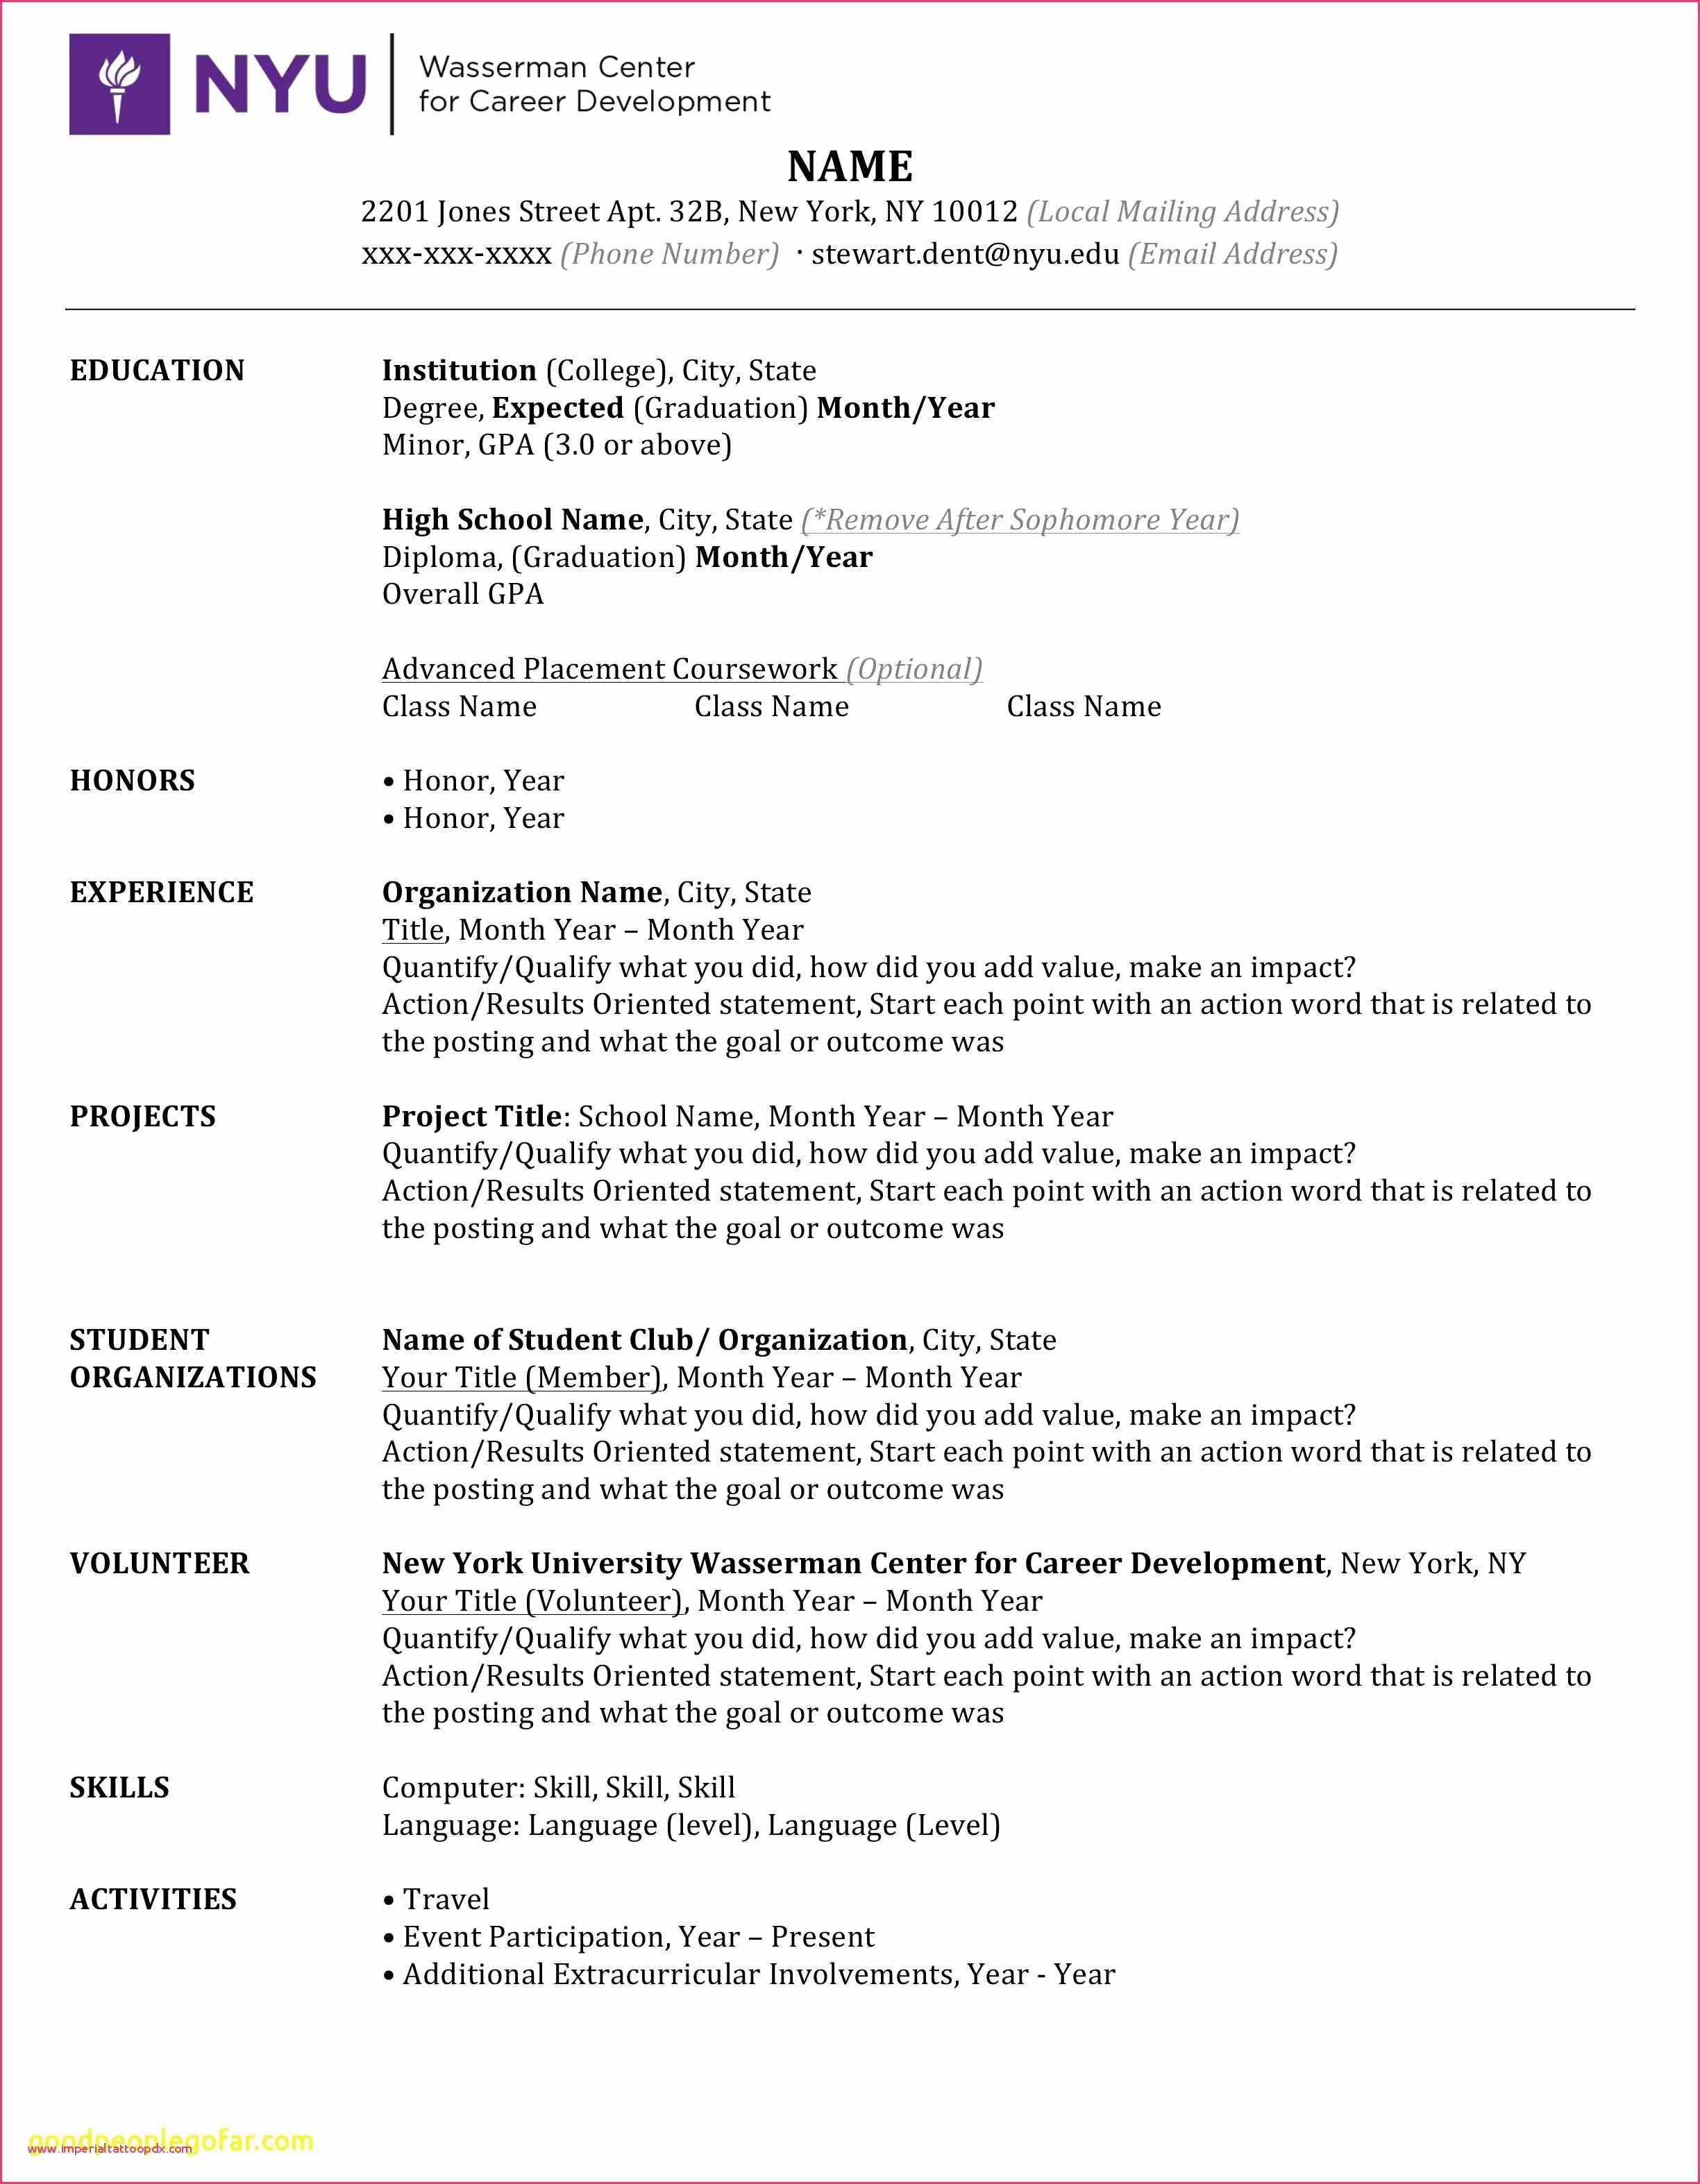 Resume Template On Word 2007 Luxury 46 Resume Template Download for Microsoft Word 2007